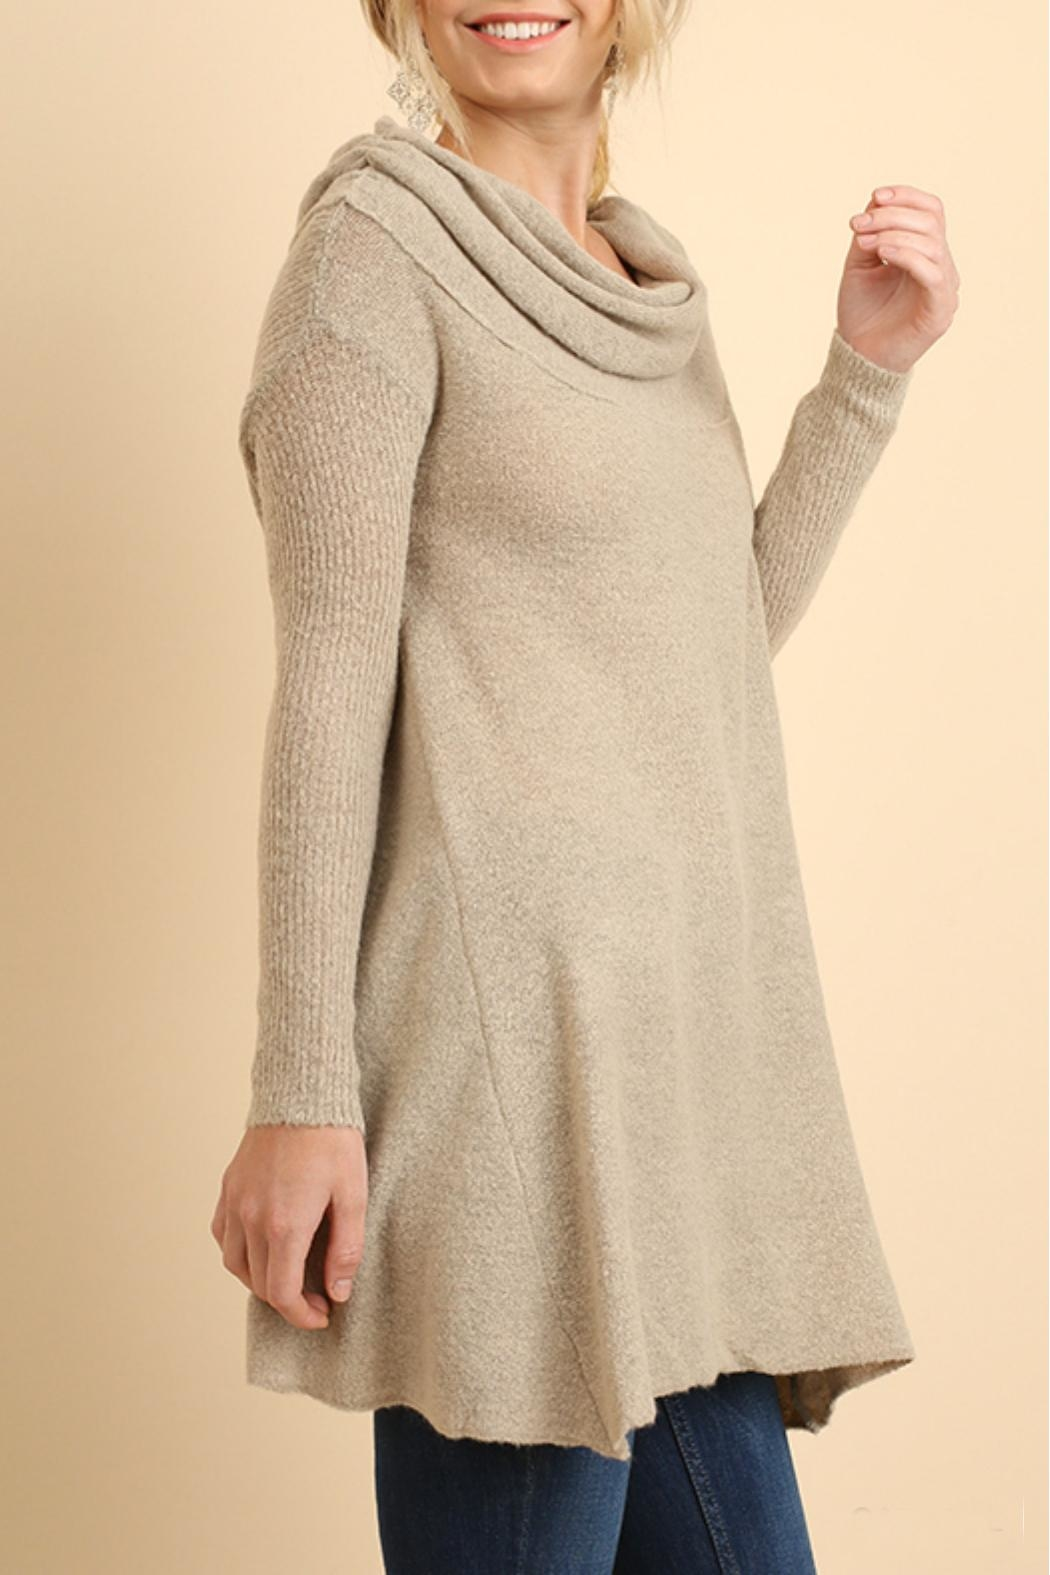 Umgee USA Off Shoulder Sleeve Sweater - Main Image